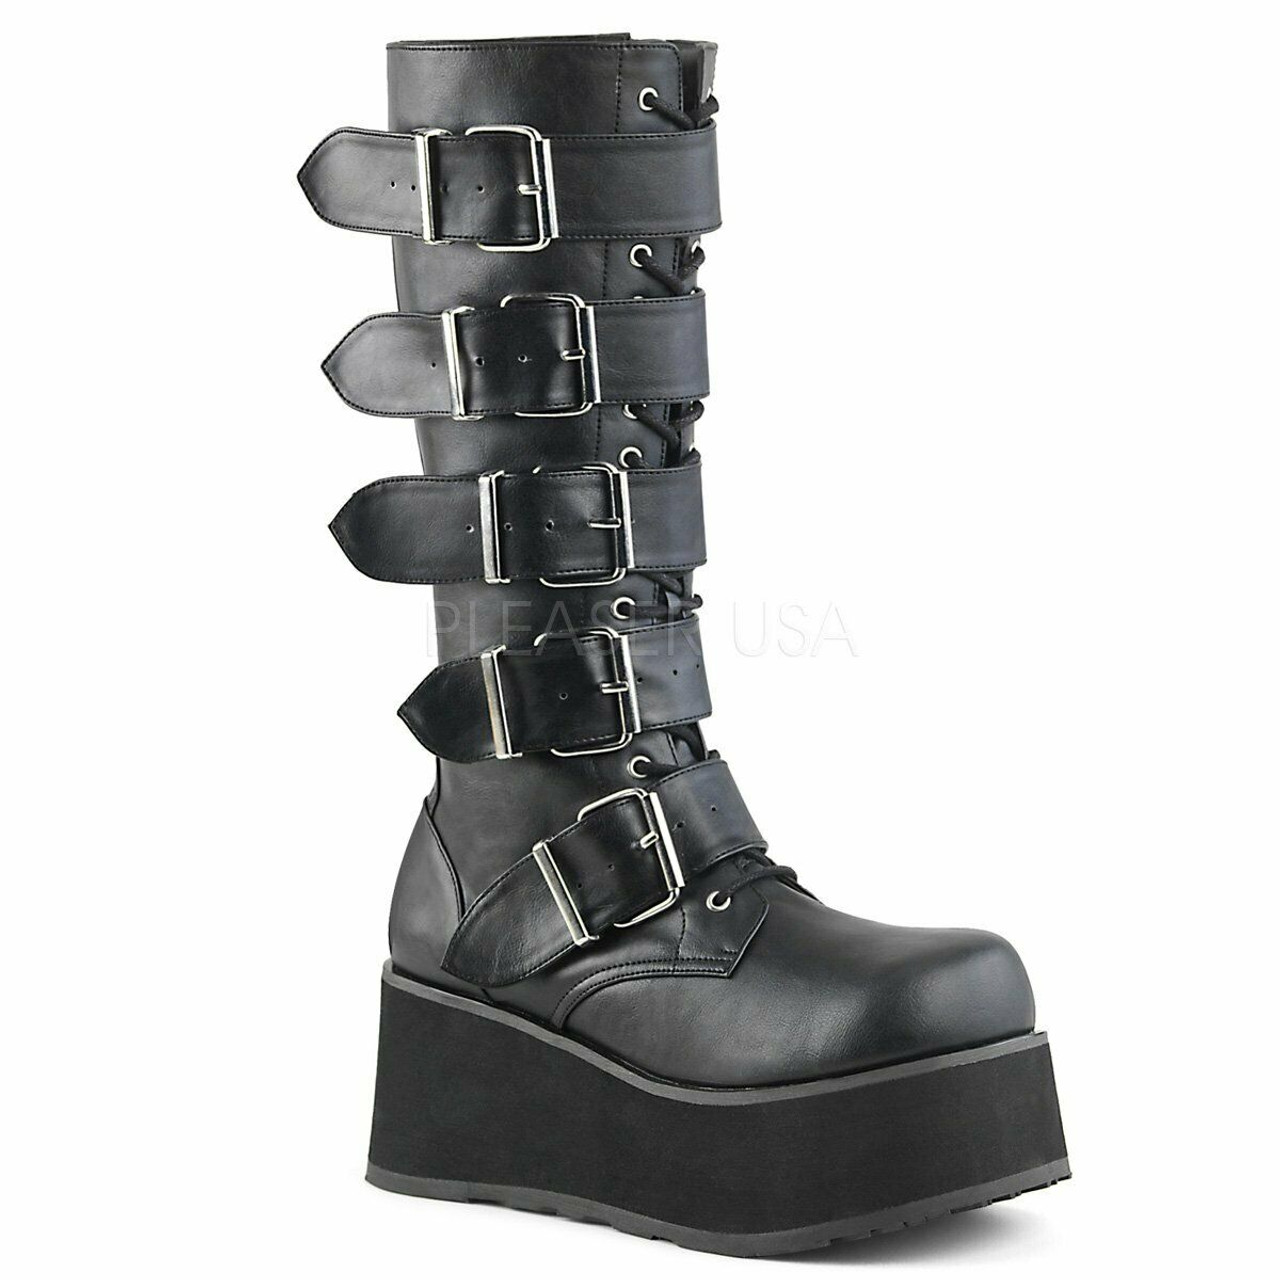 1b3173314cd36 Demonia Cyber Gothic Buckles Black Punk Knee High Platforms Boots Trashville -518